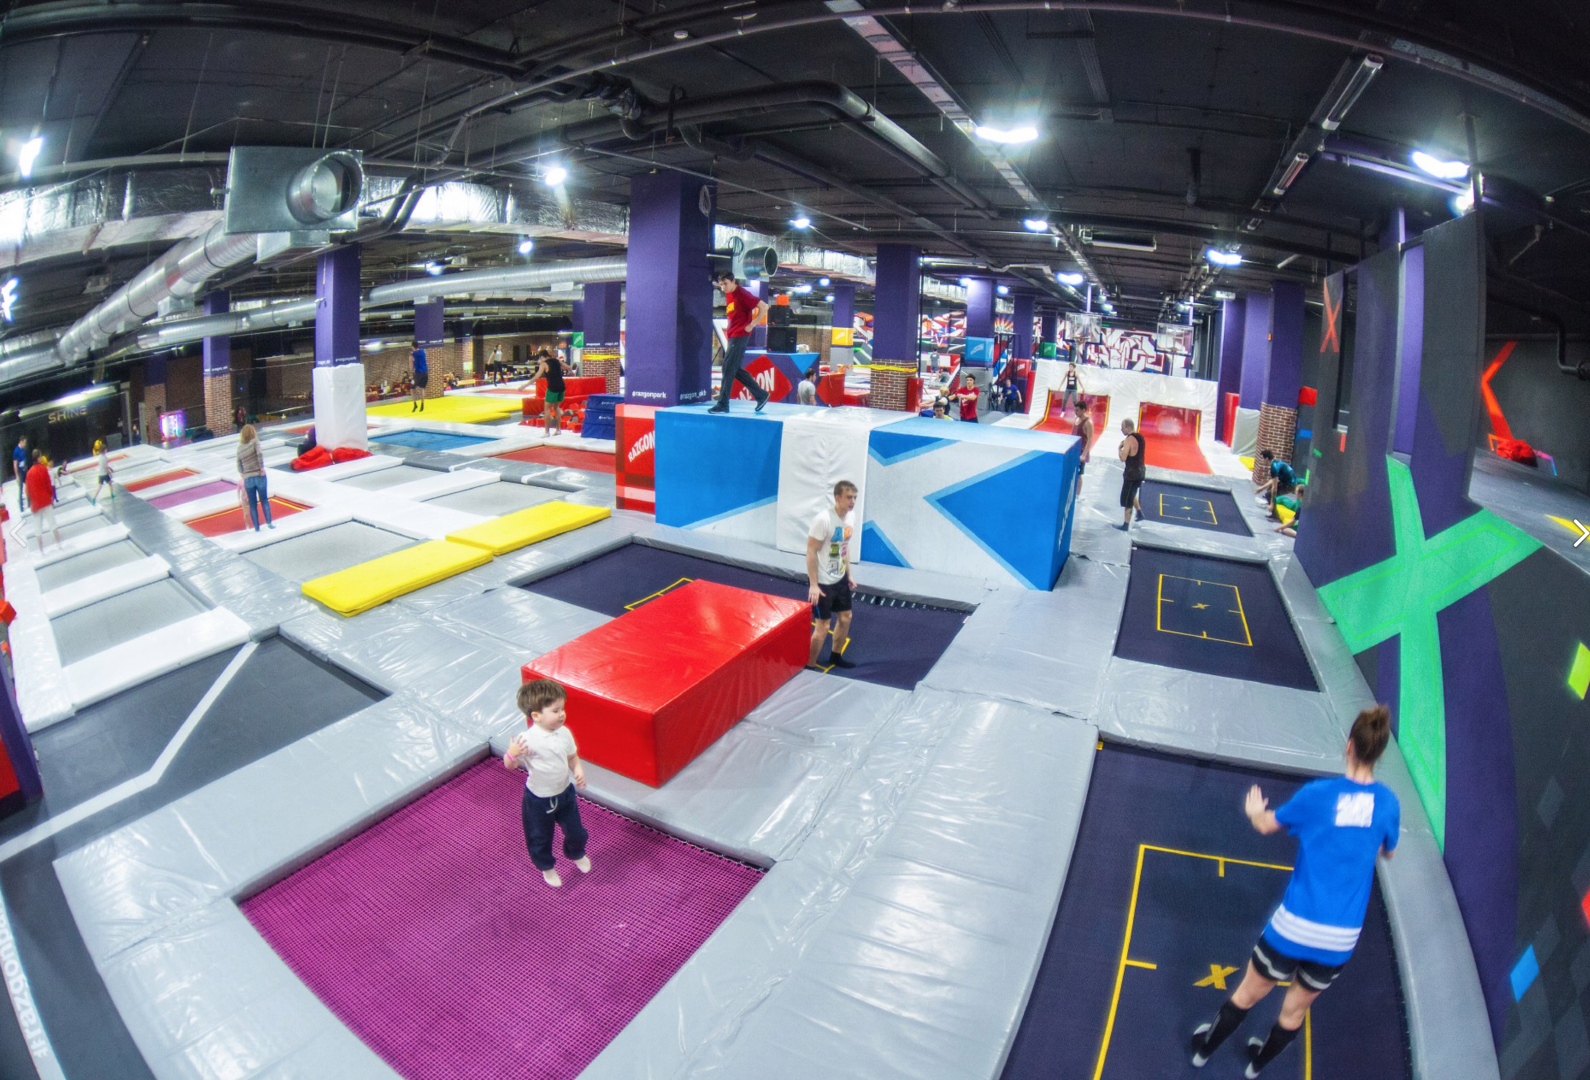 Trampoline park locations